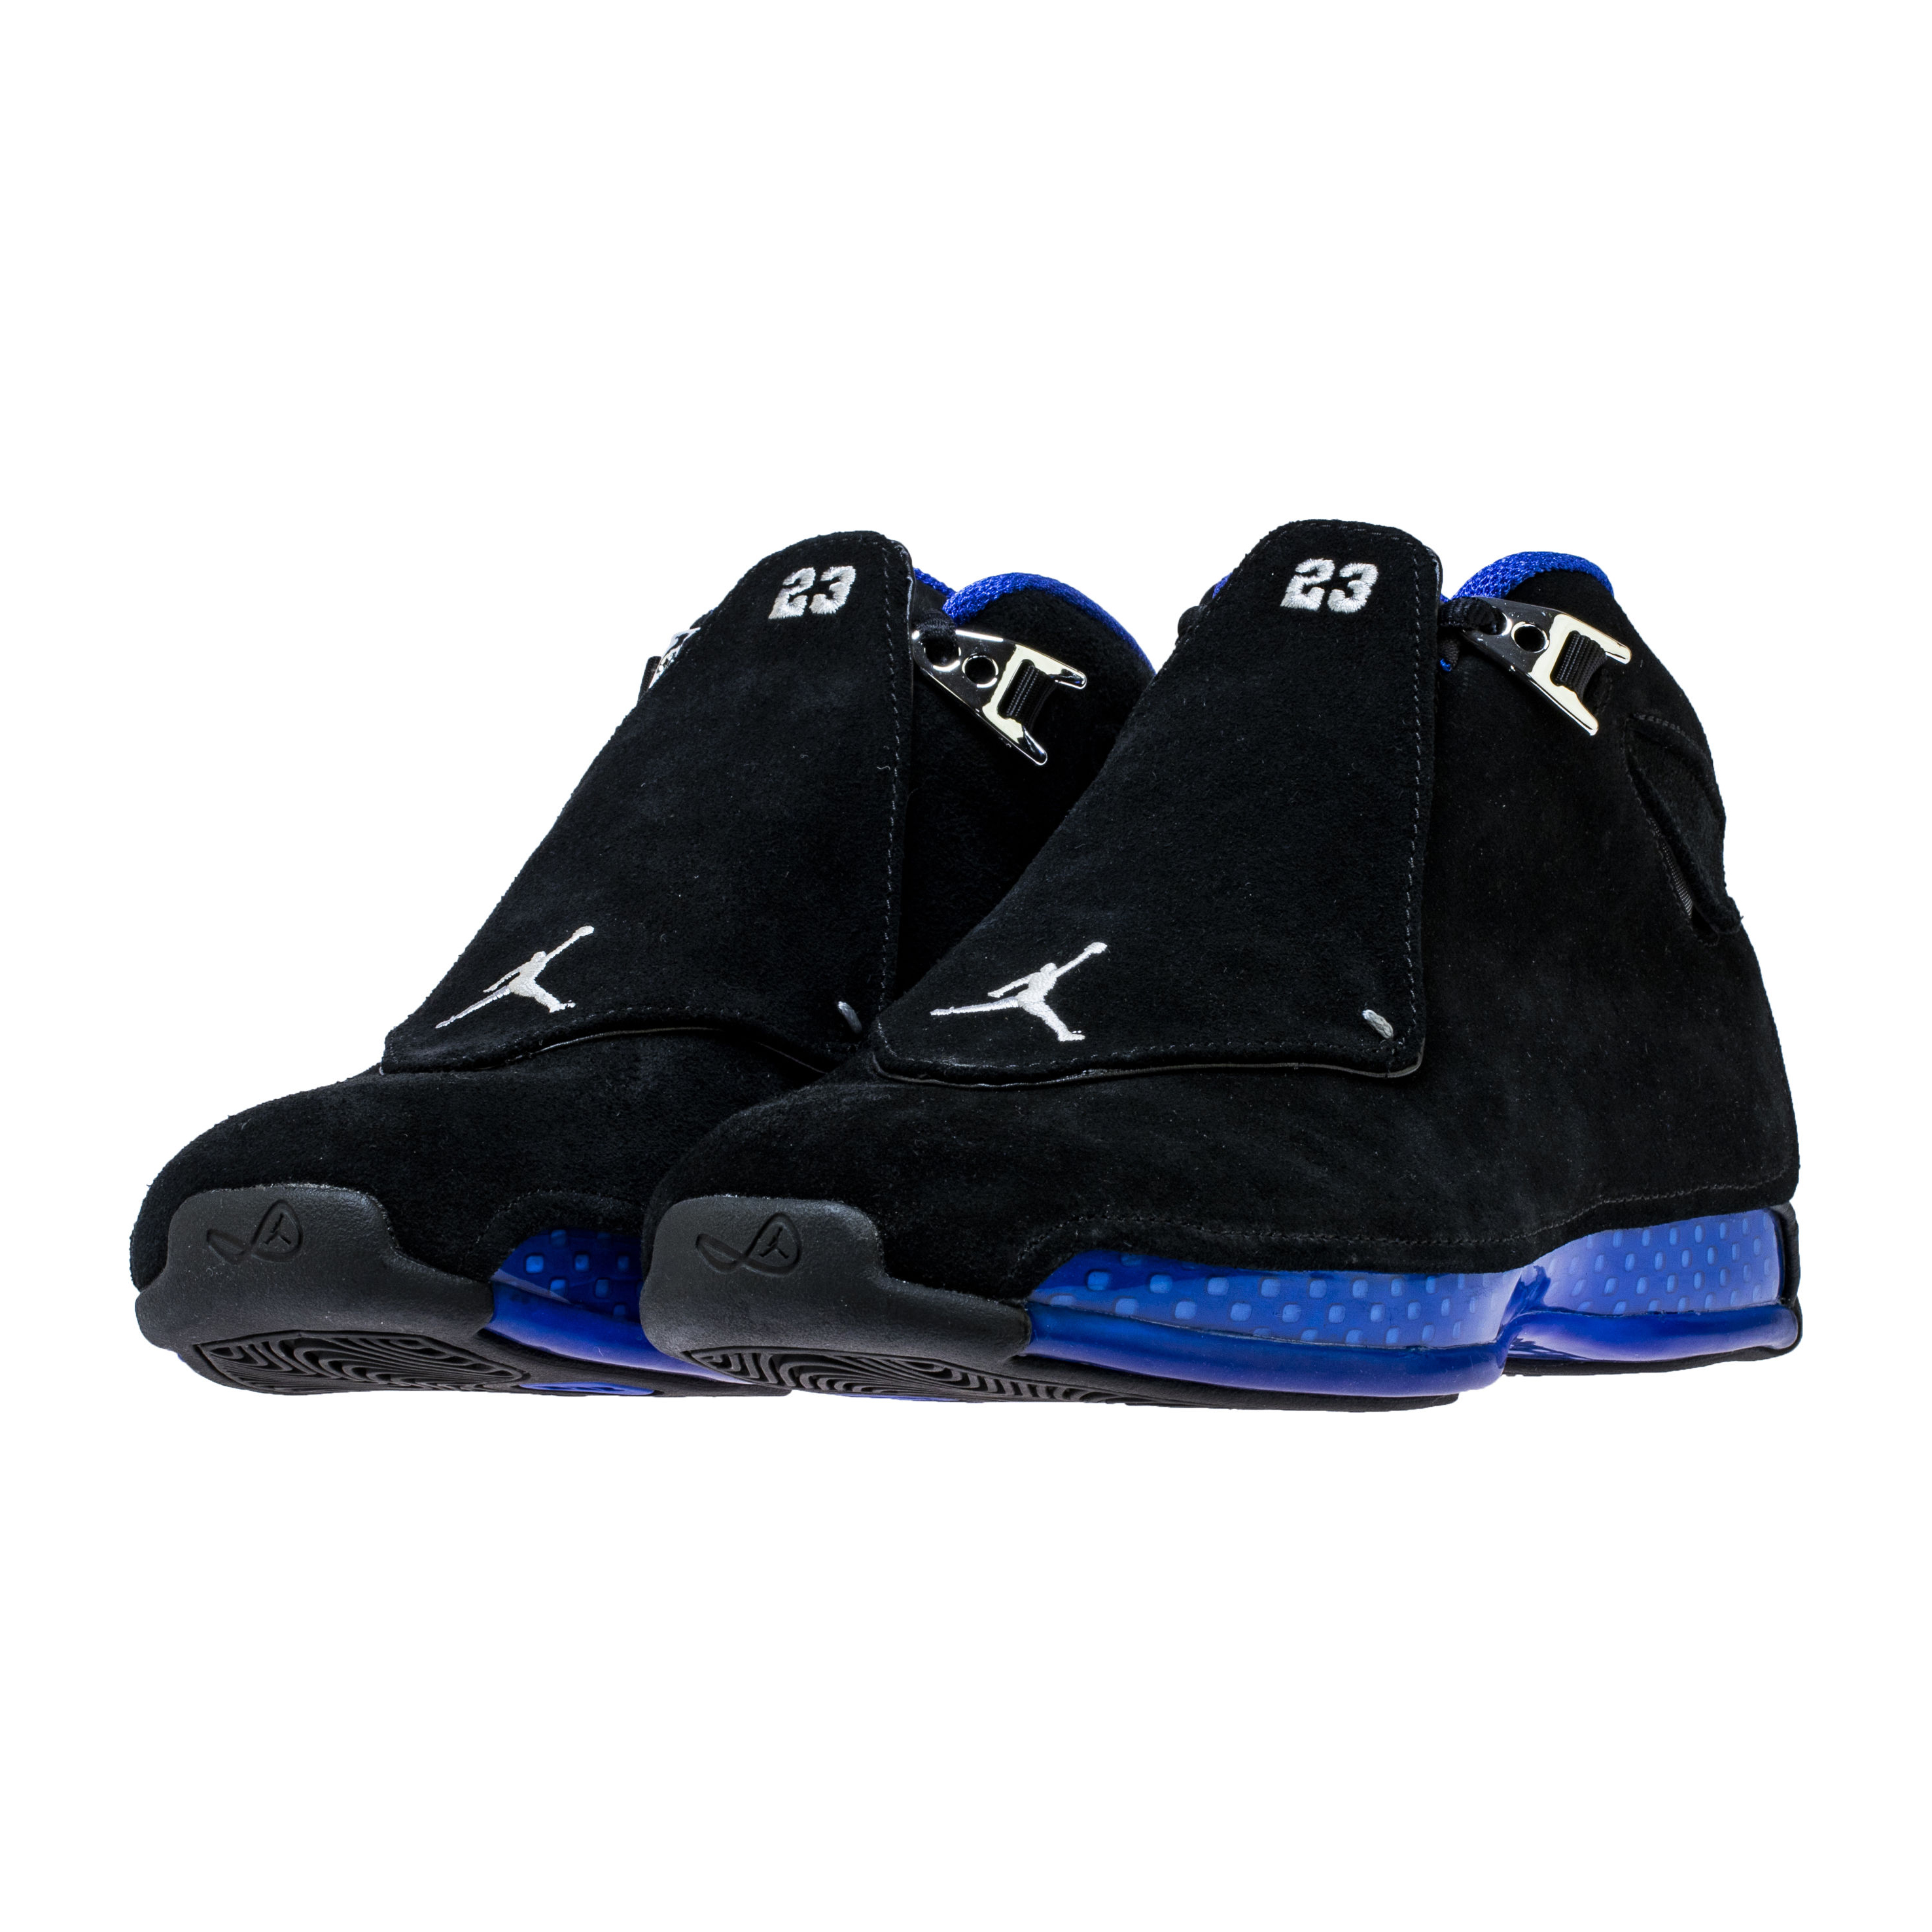 1feb27d9acea ... clearance the air jordan 18 black sport royal release date has been  moved up 0e10c 3dbaf